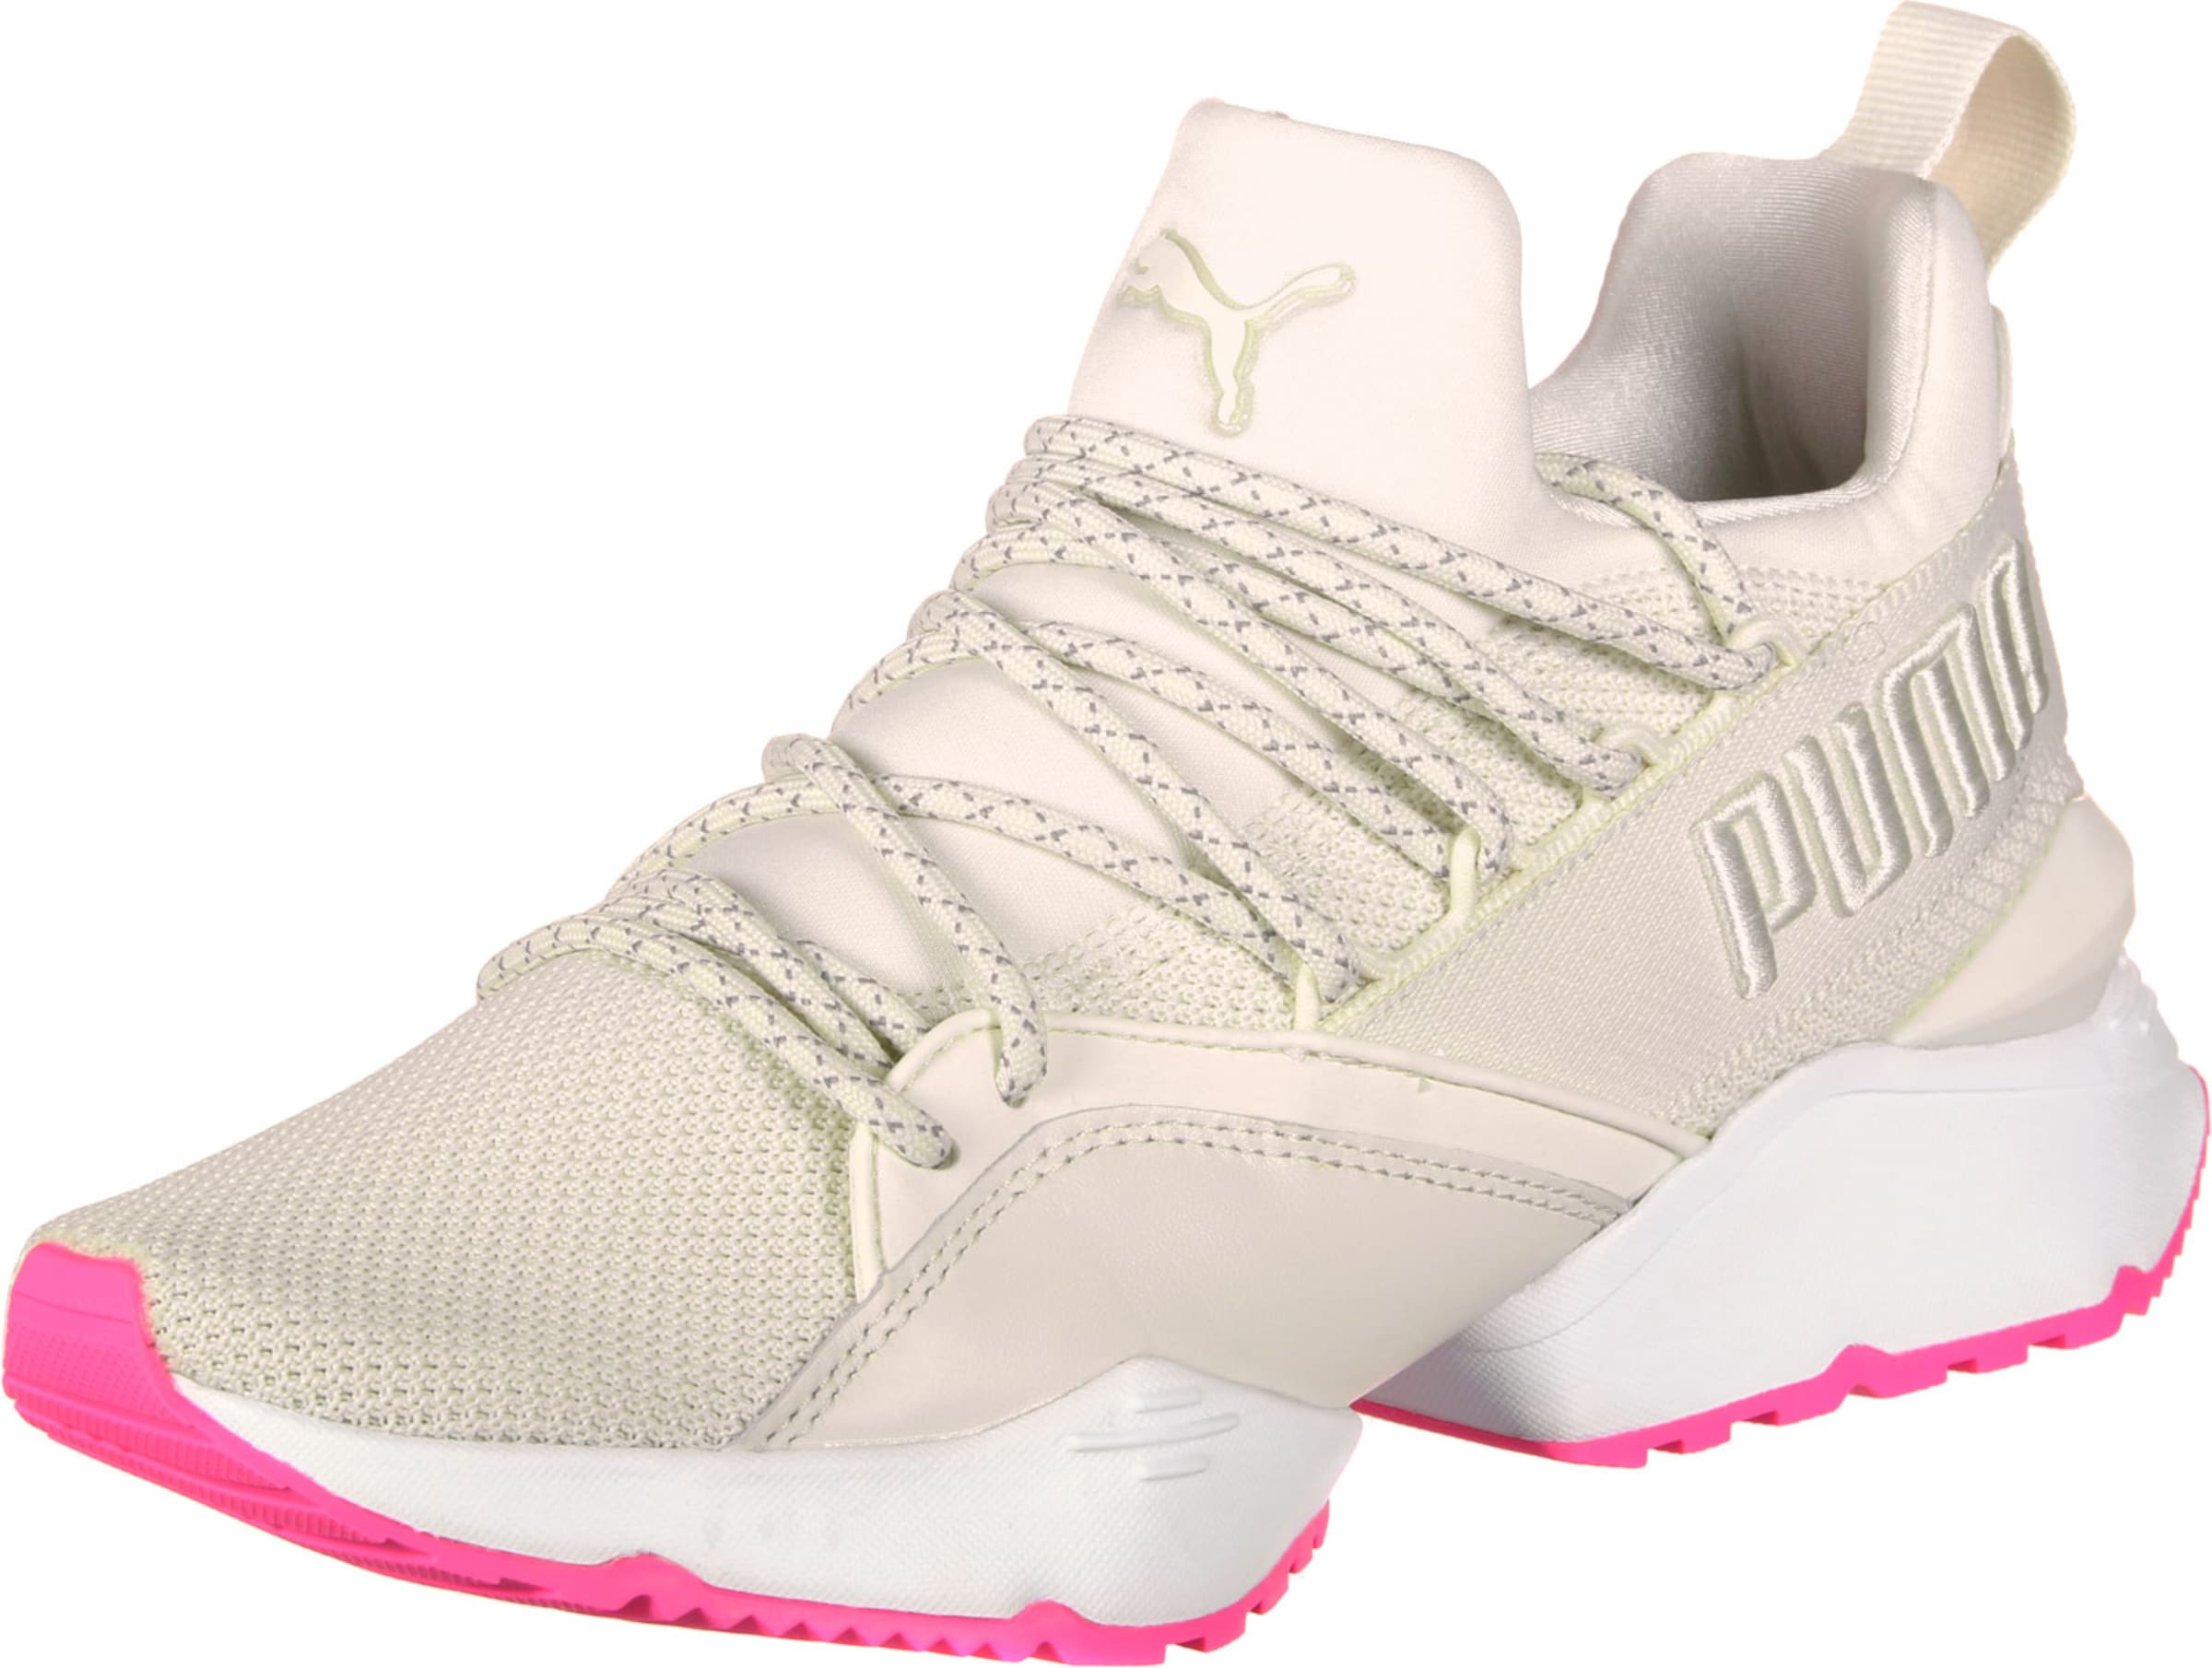 In 'muse PinkWeiß Puma Up Sneaker Maia W' kuZPXi